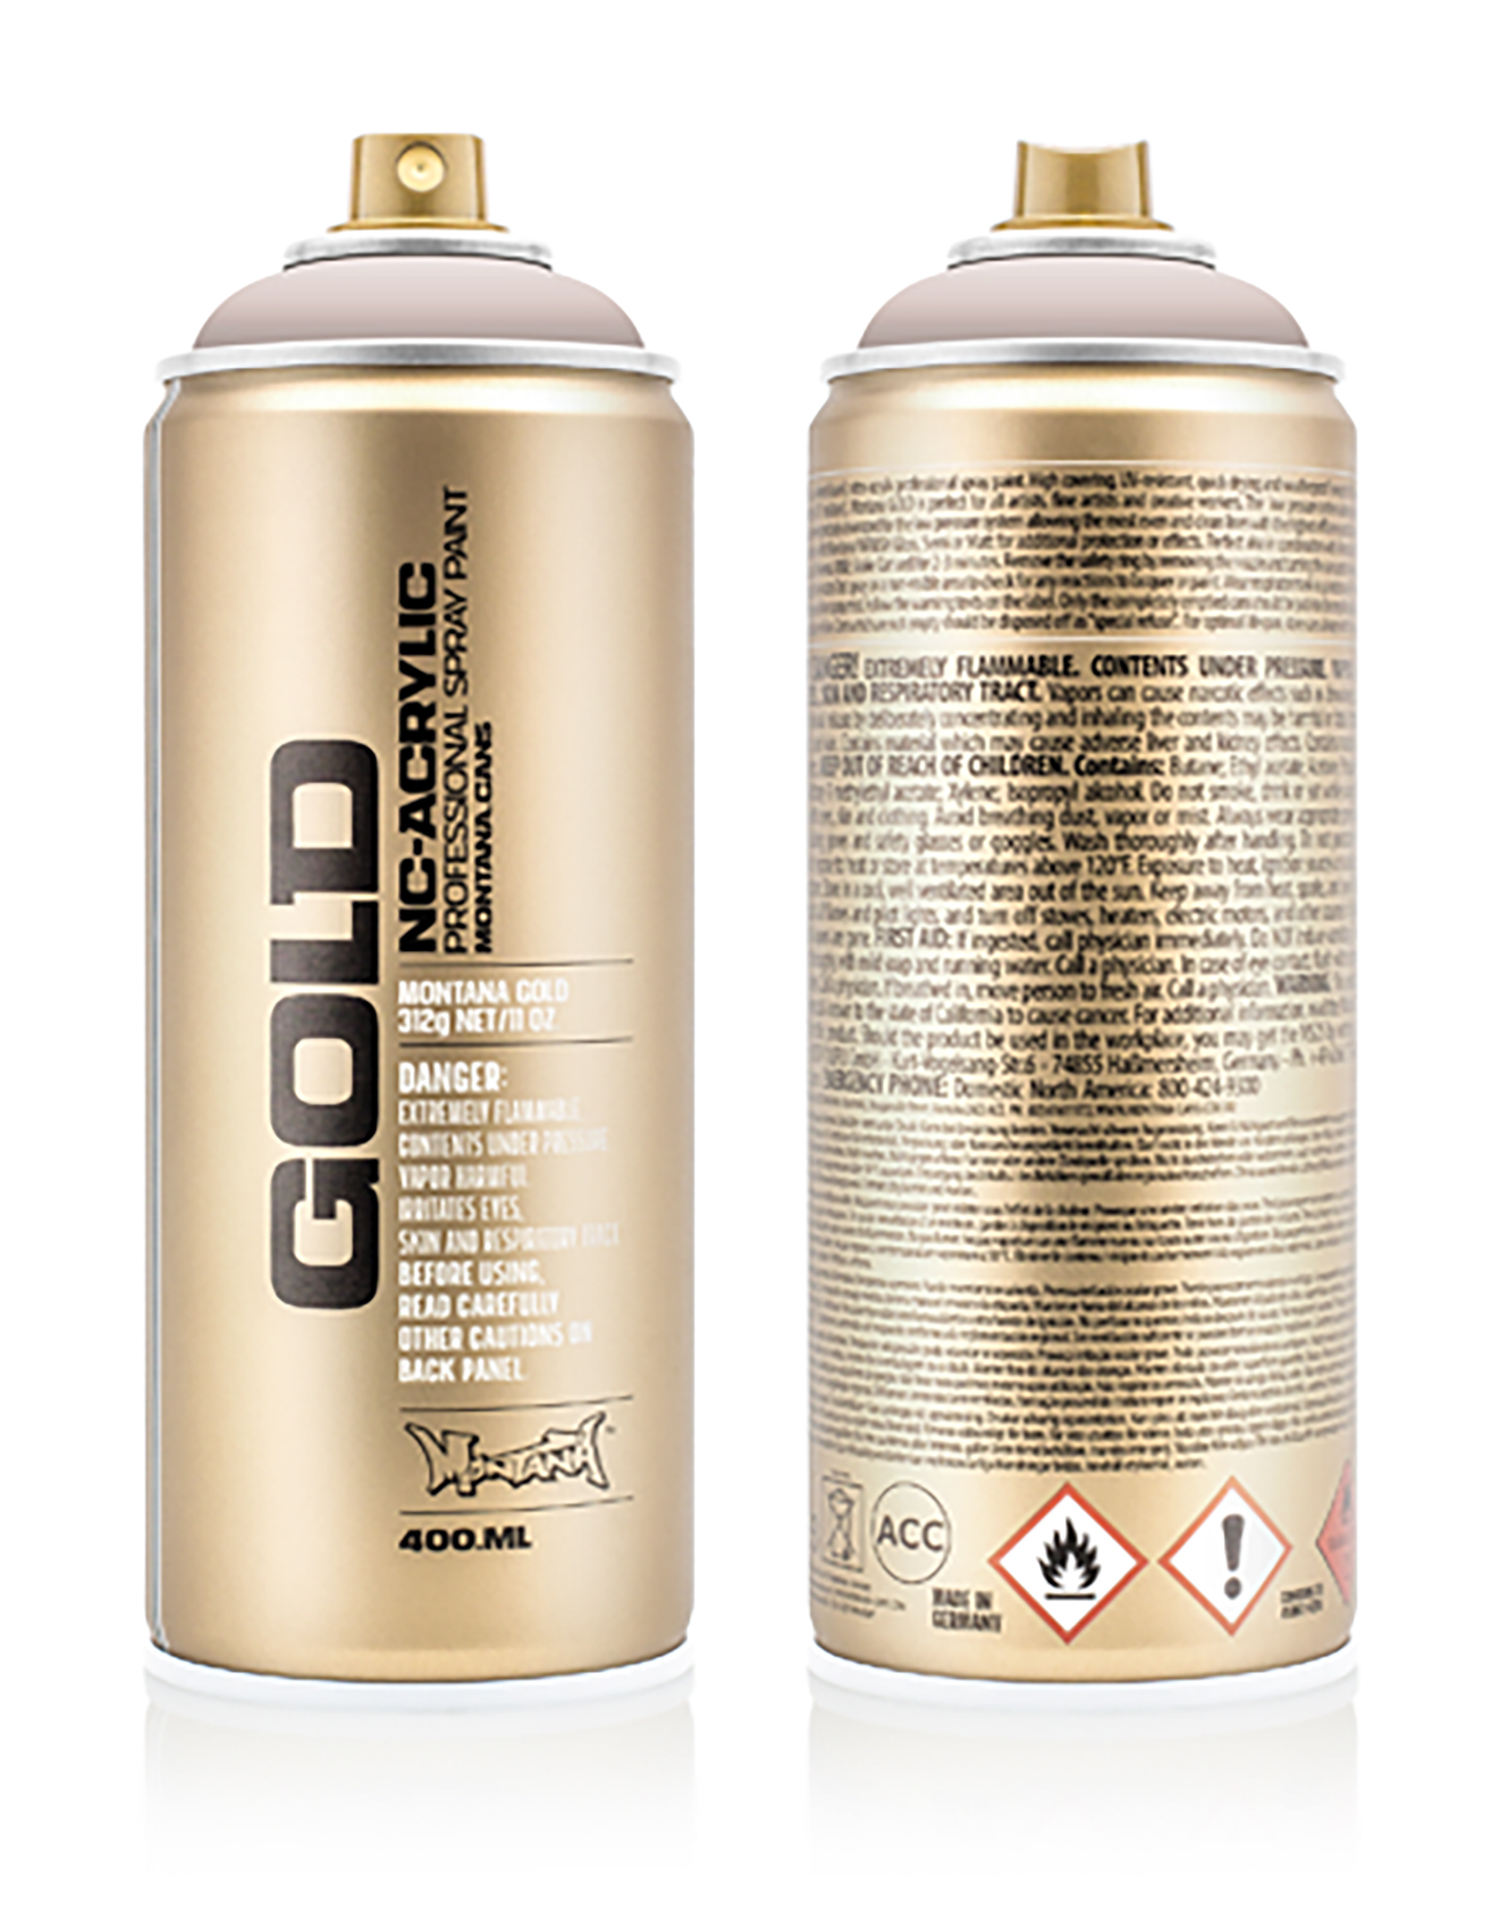 MONTANA-GOLD-SPRAY-400ML-G-8180